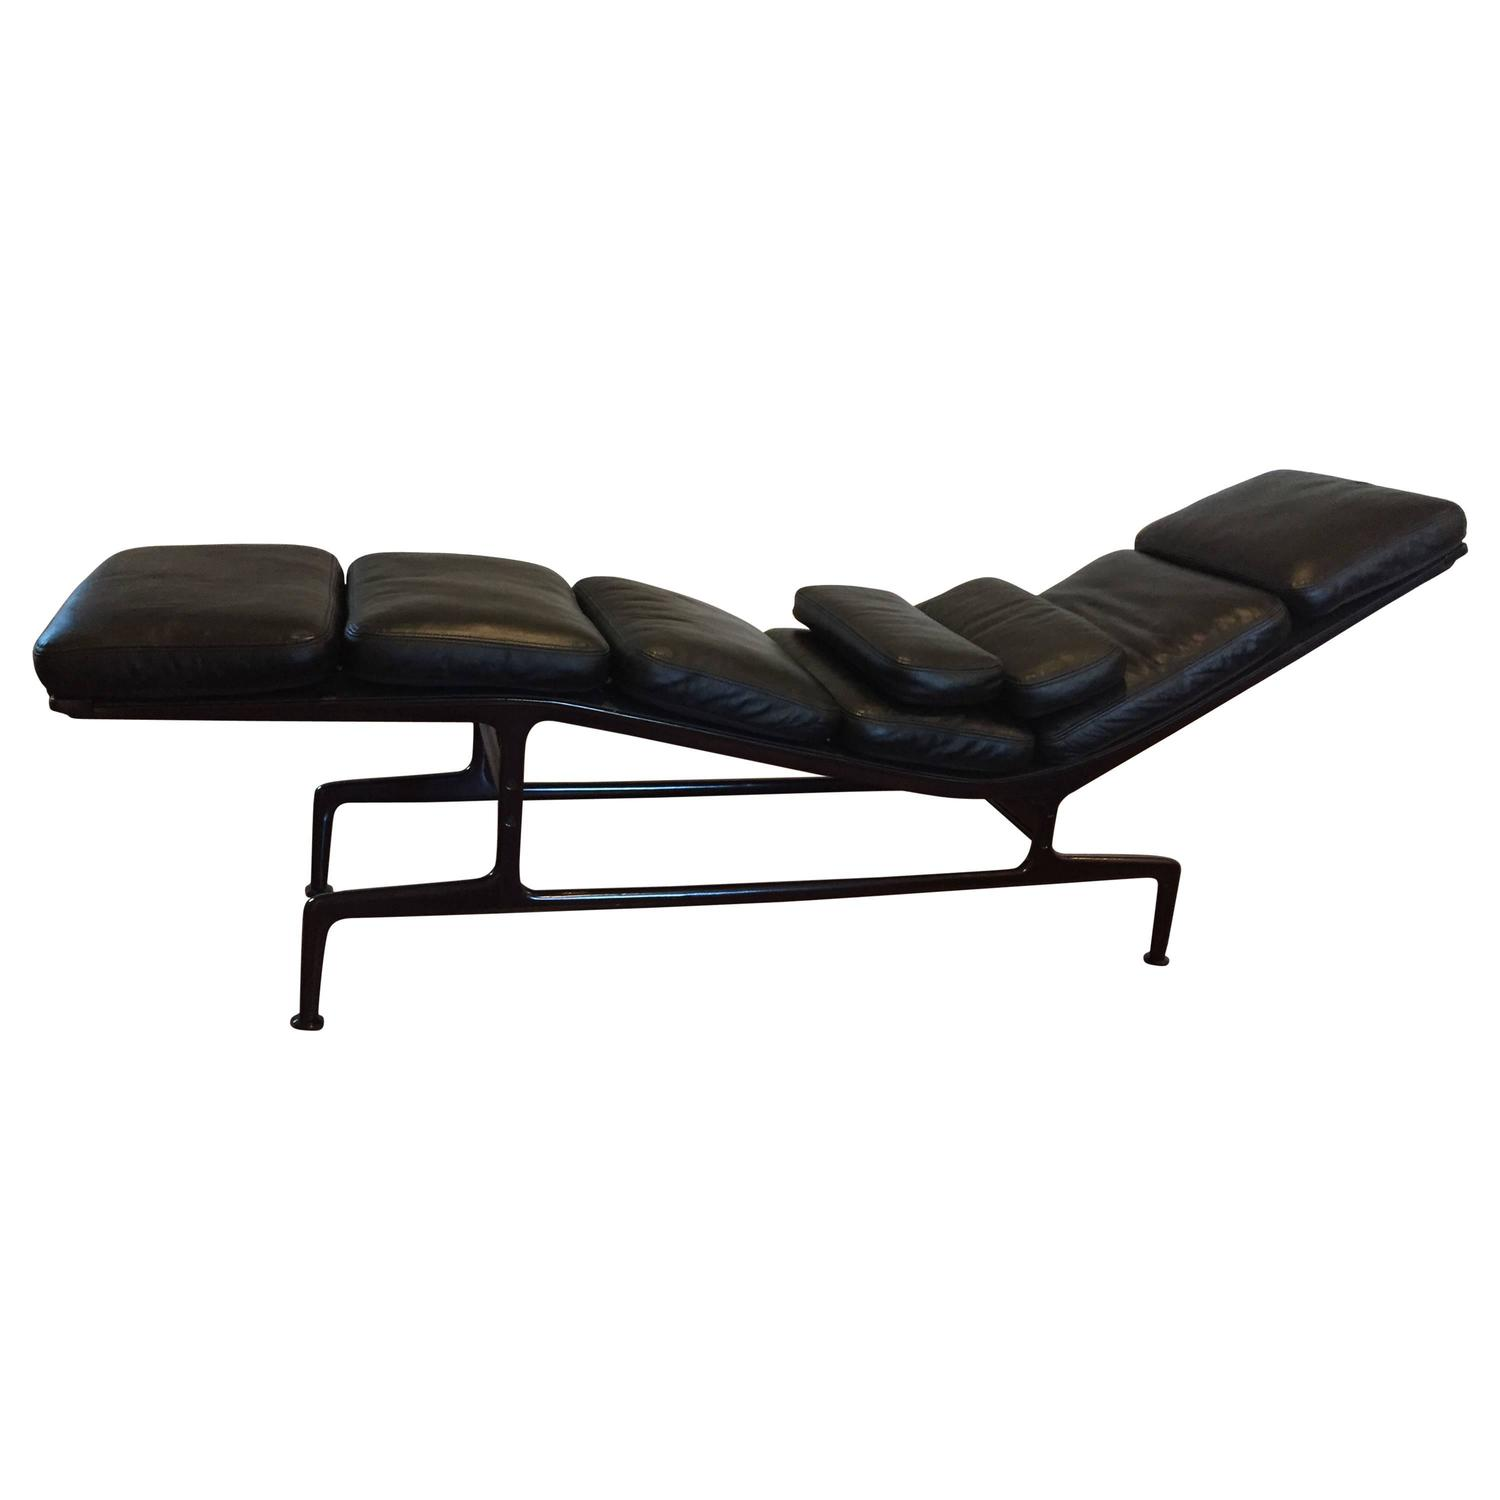 eames for herman miller billy wilder chaise longue for sale at 1stdibs. Black Bedroom Furniture Sets. Home Design Ideas